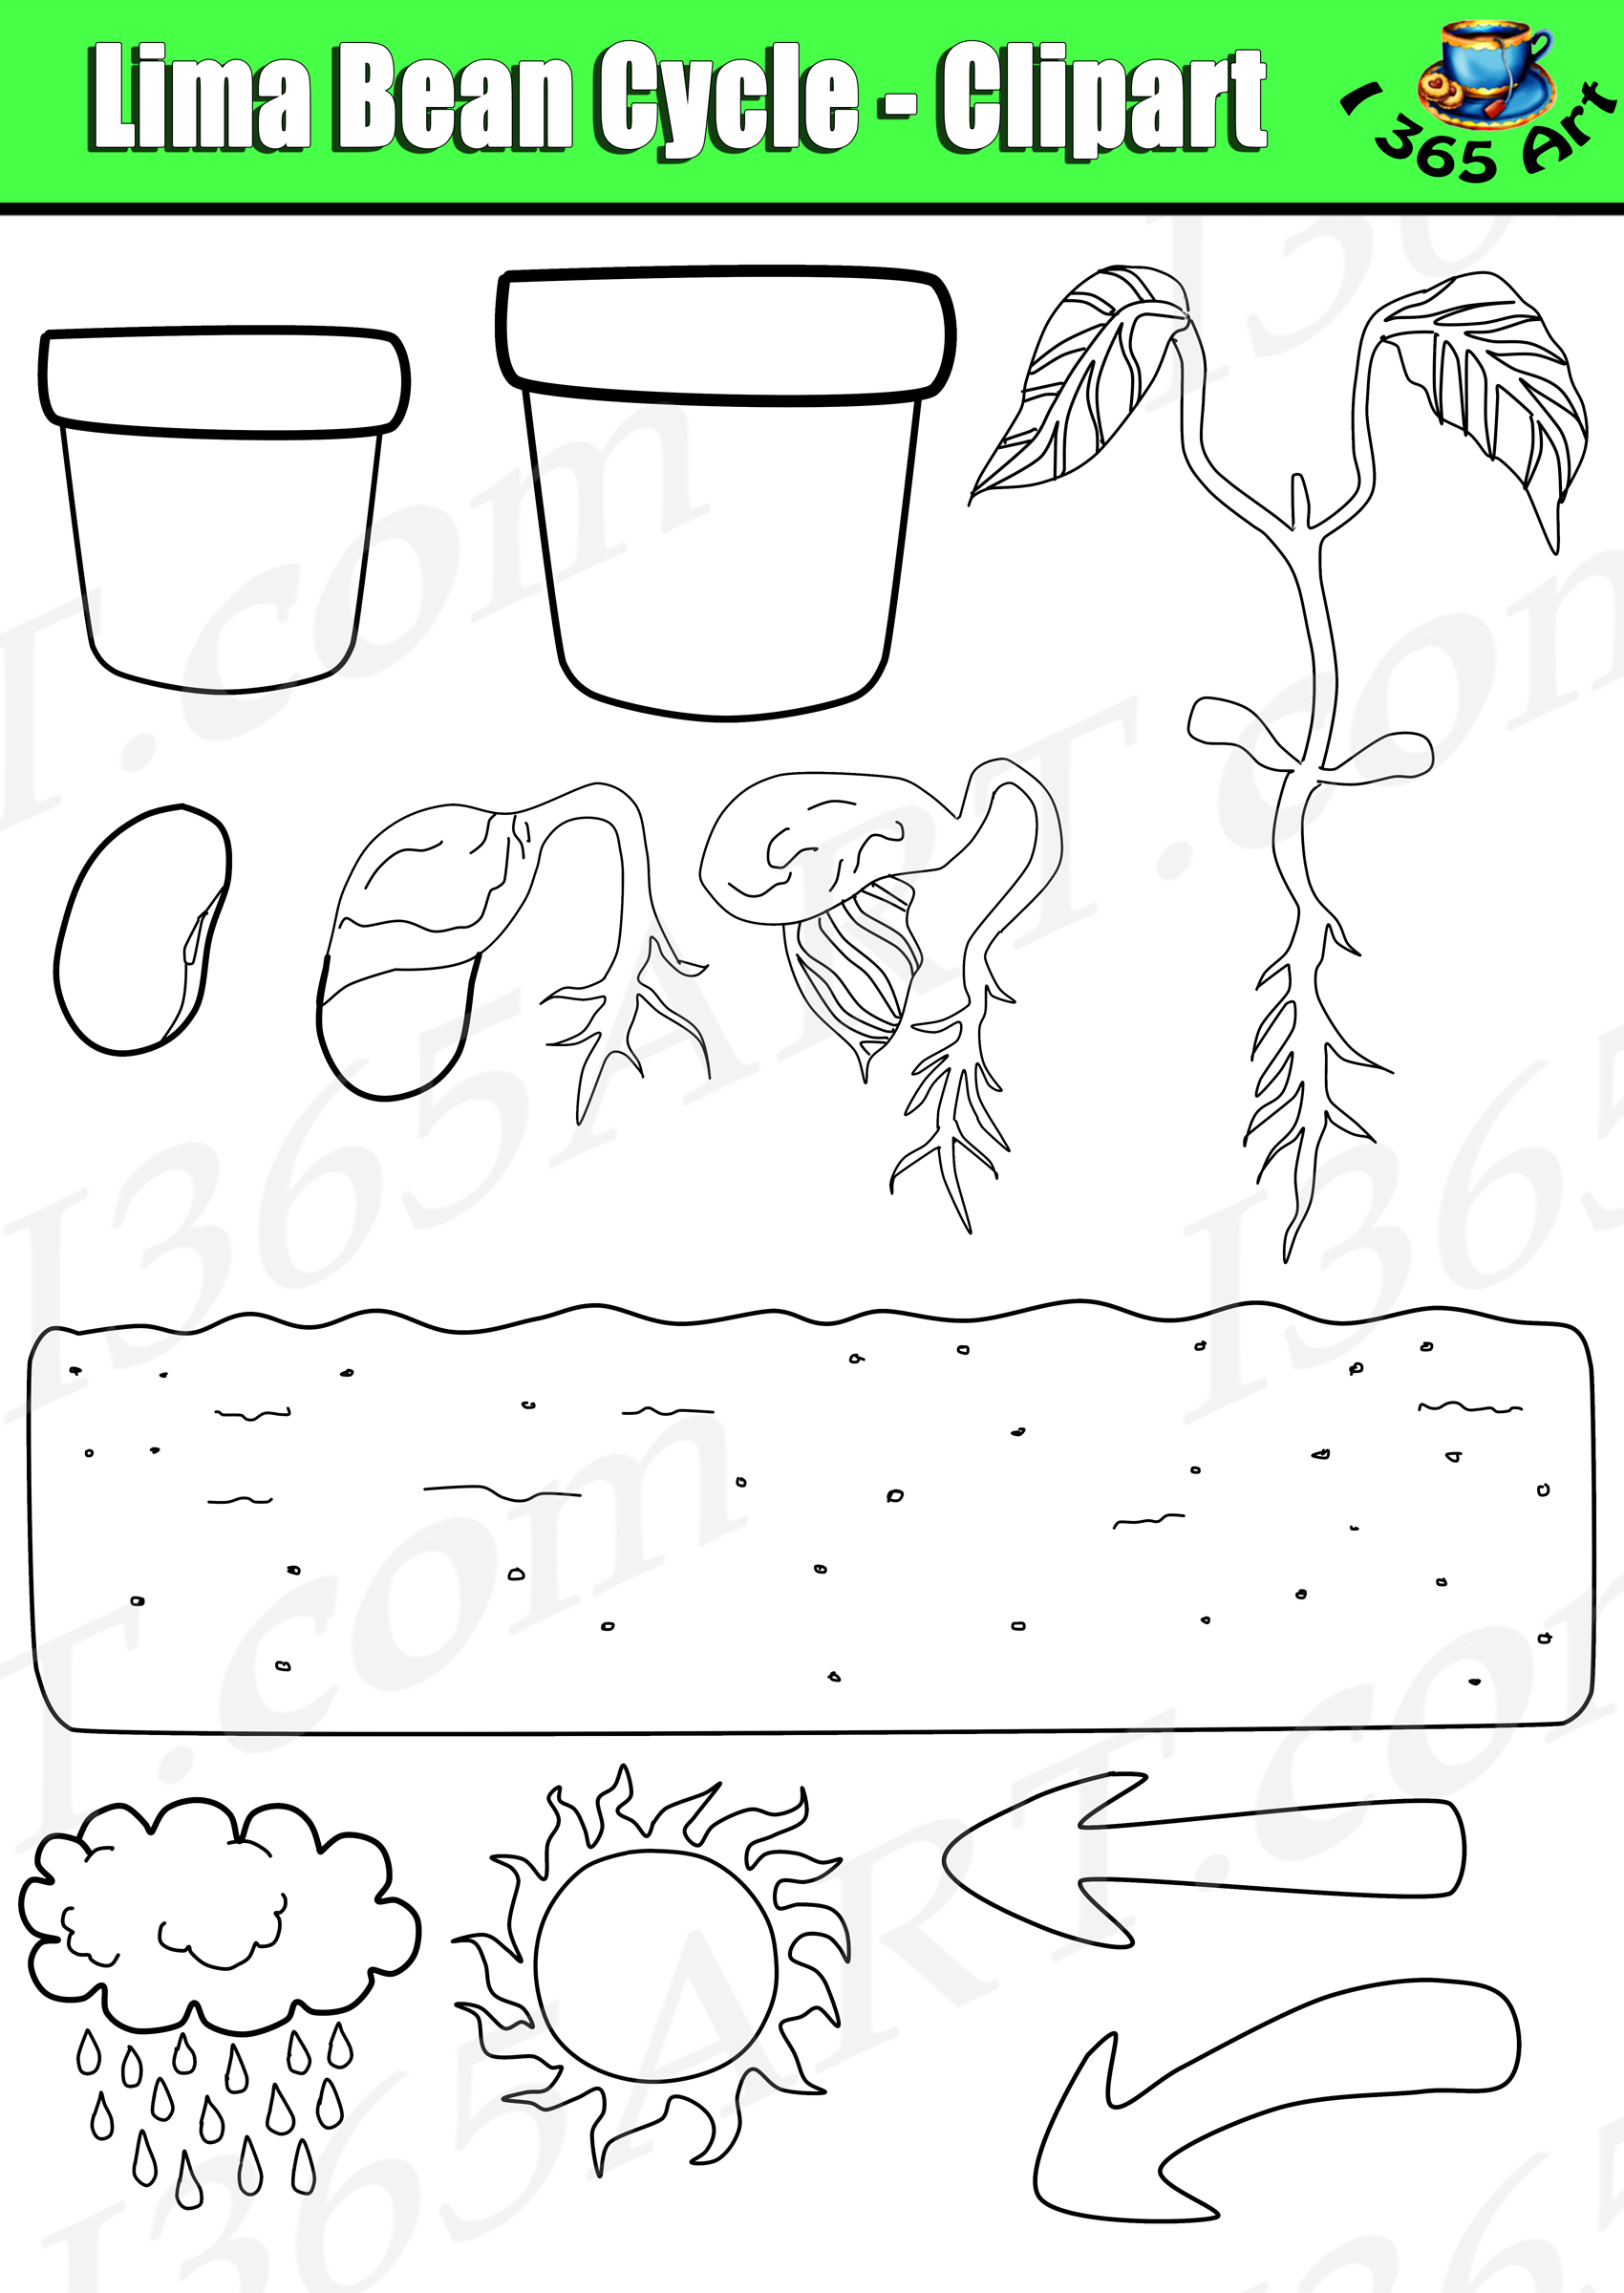 Plant Life Cycle Clipart.